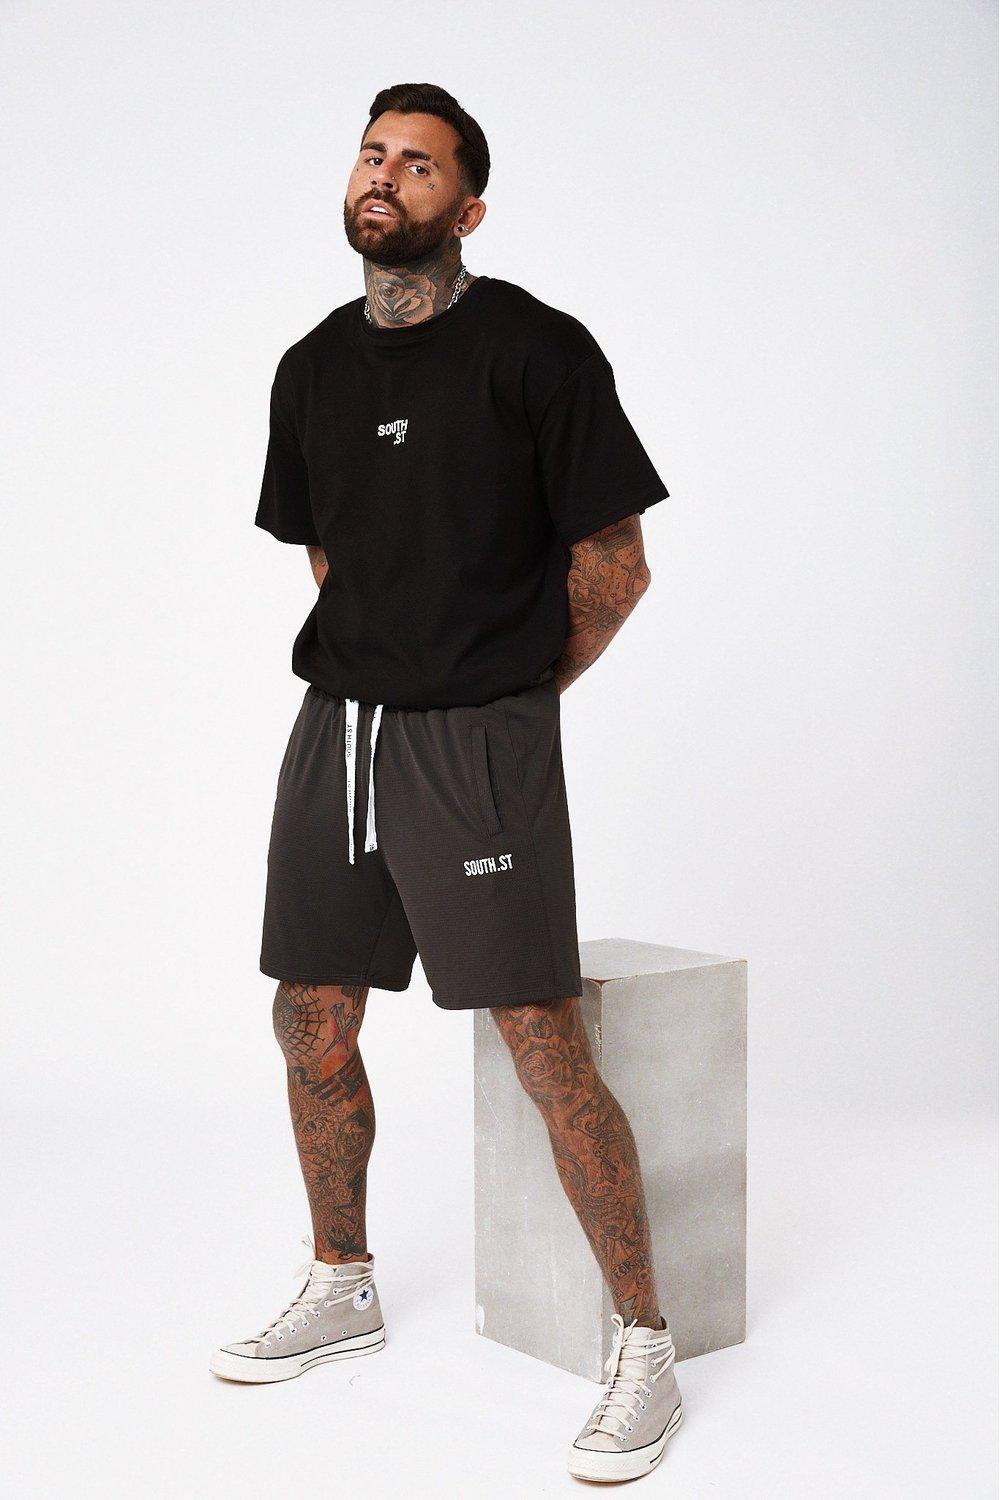 Net Shorts / Black | South St | Mad About The Boy